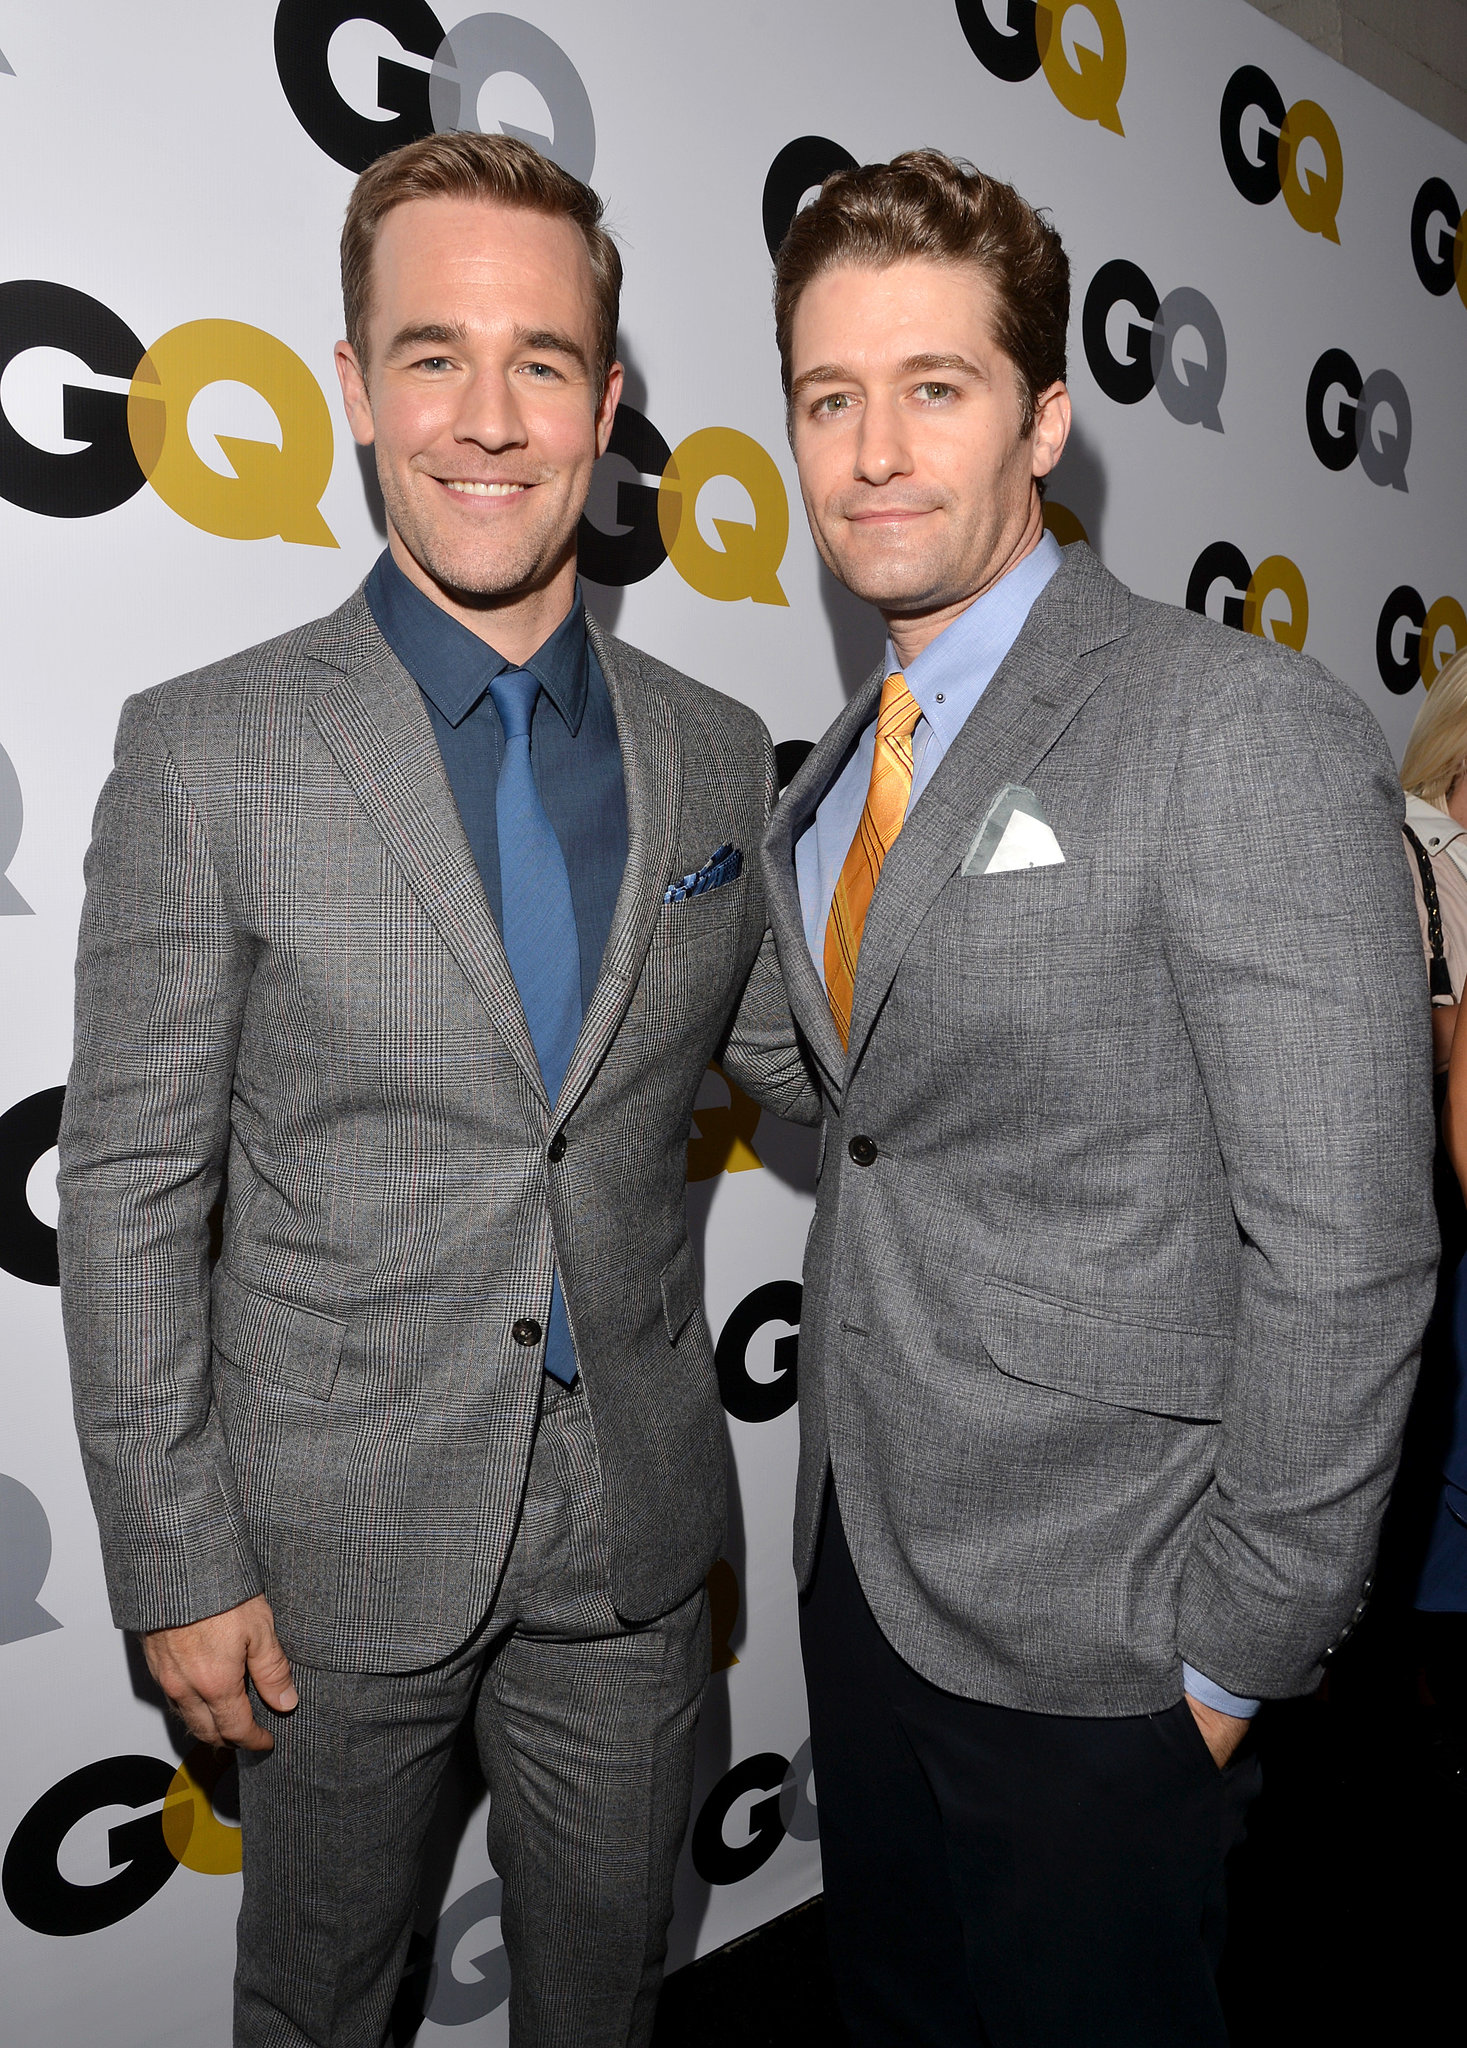 James Van Der Beek posed with Matthew Morrison at the GQ Men of the Year party.